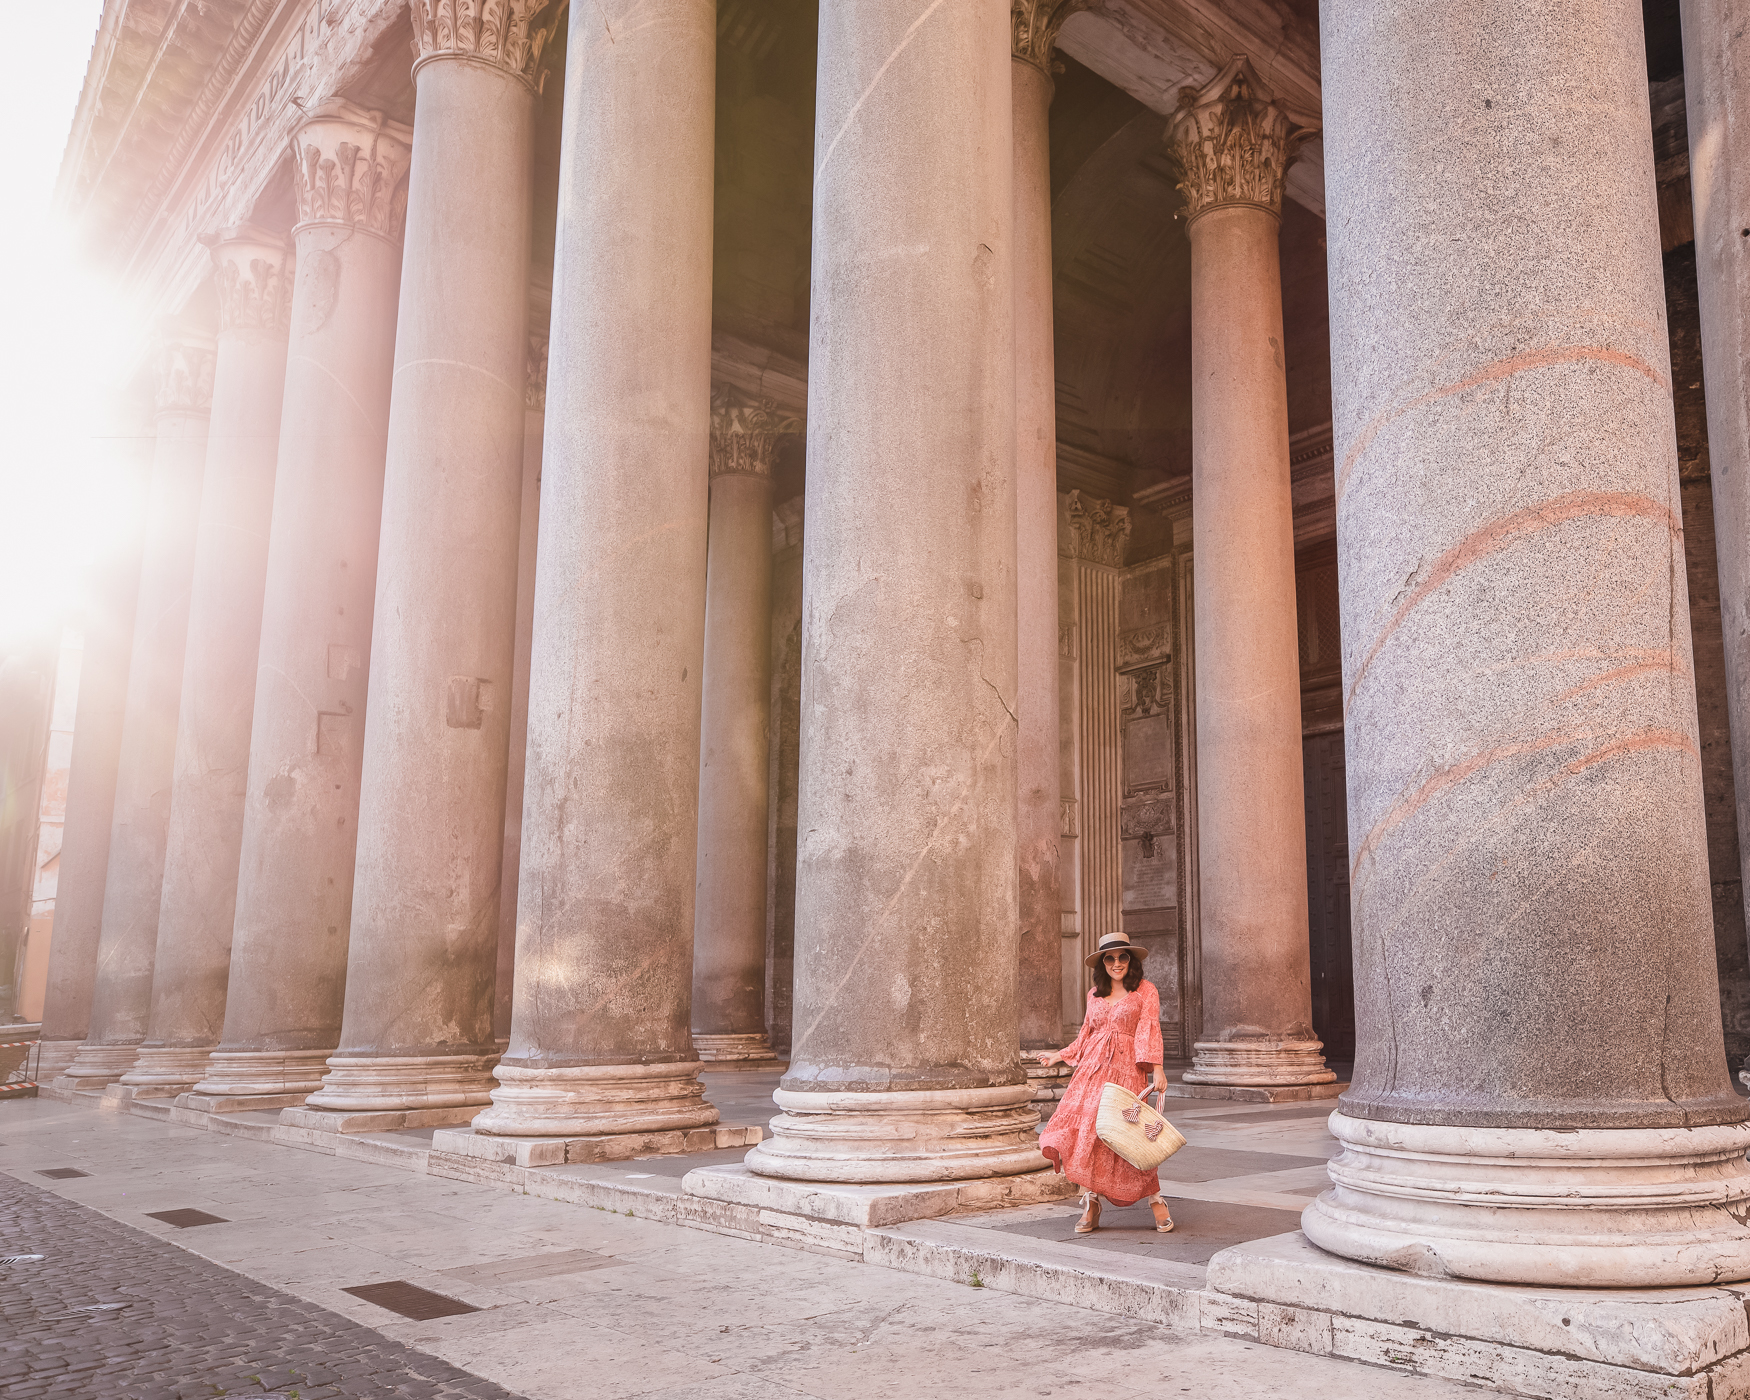 Sunrise at the Pantheon, Rome